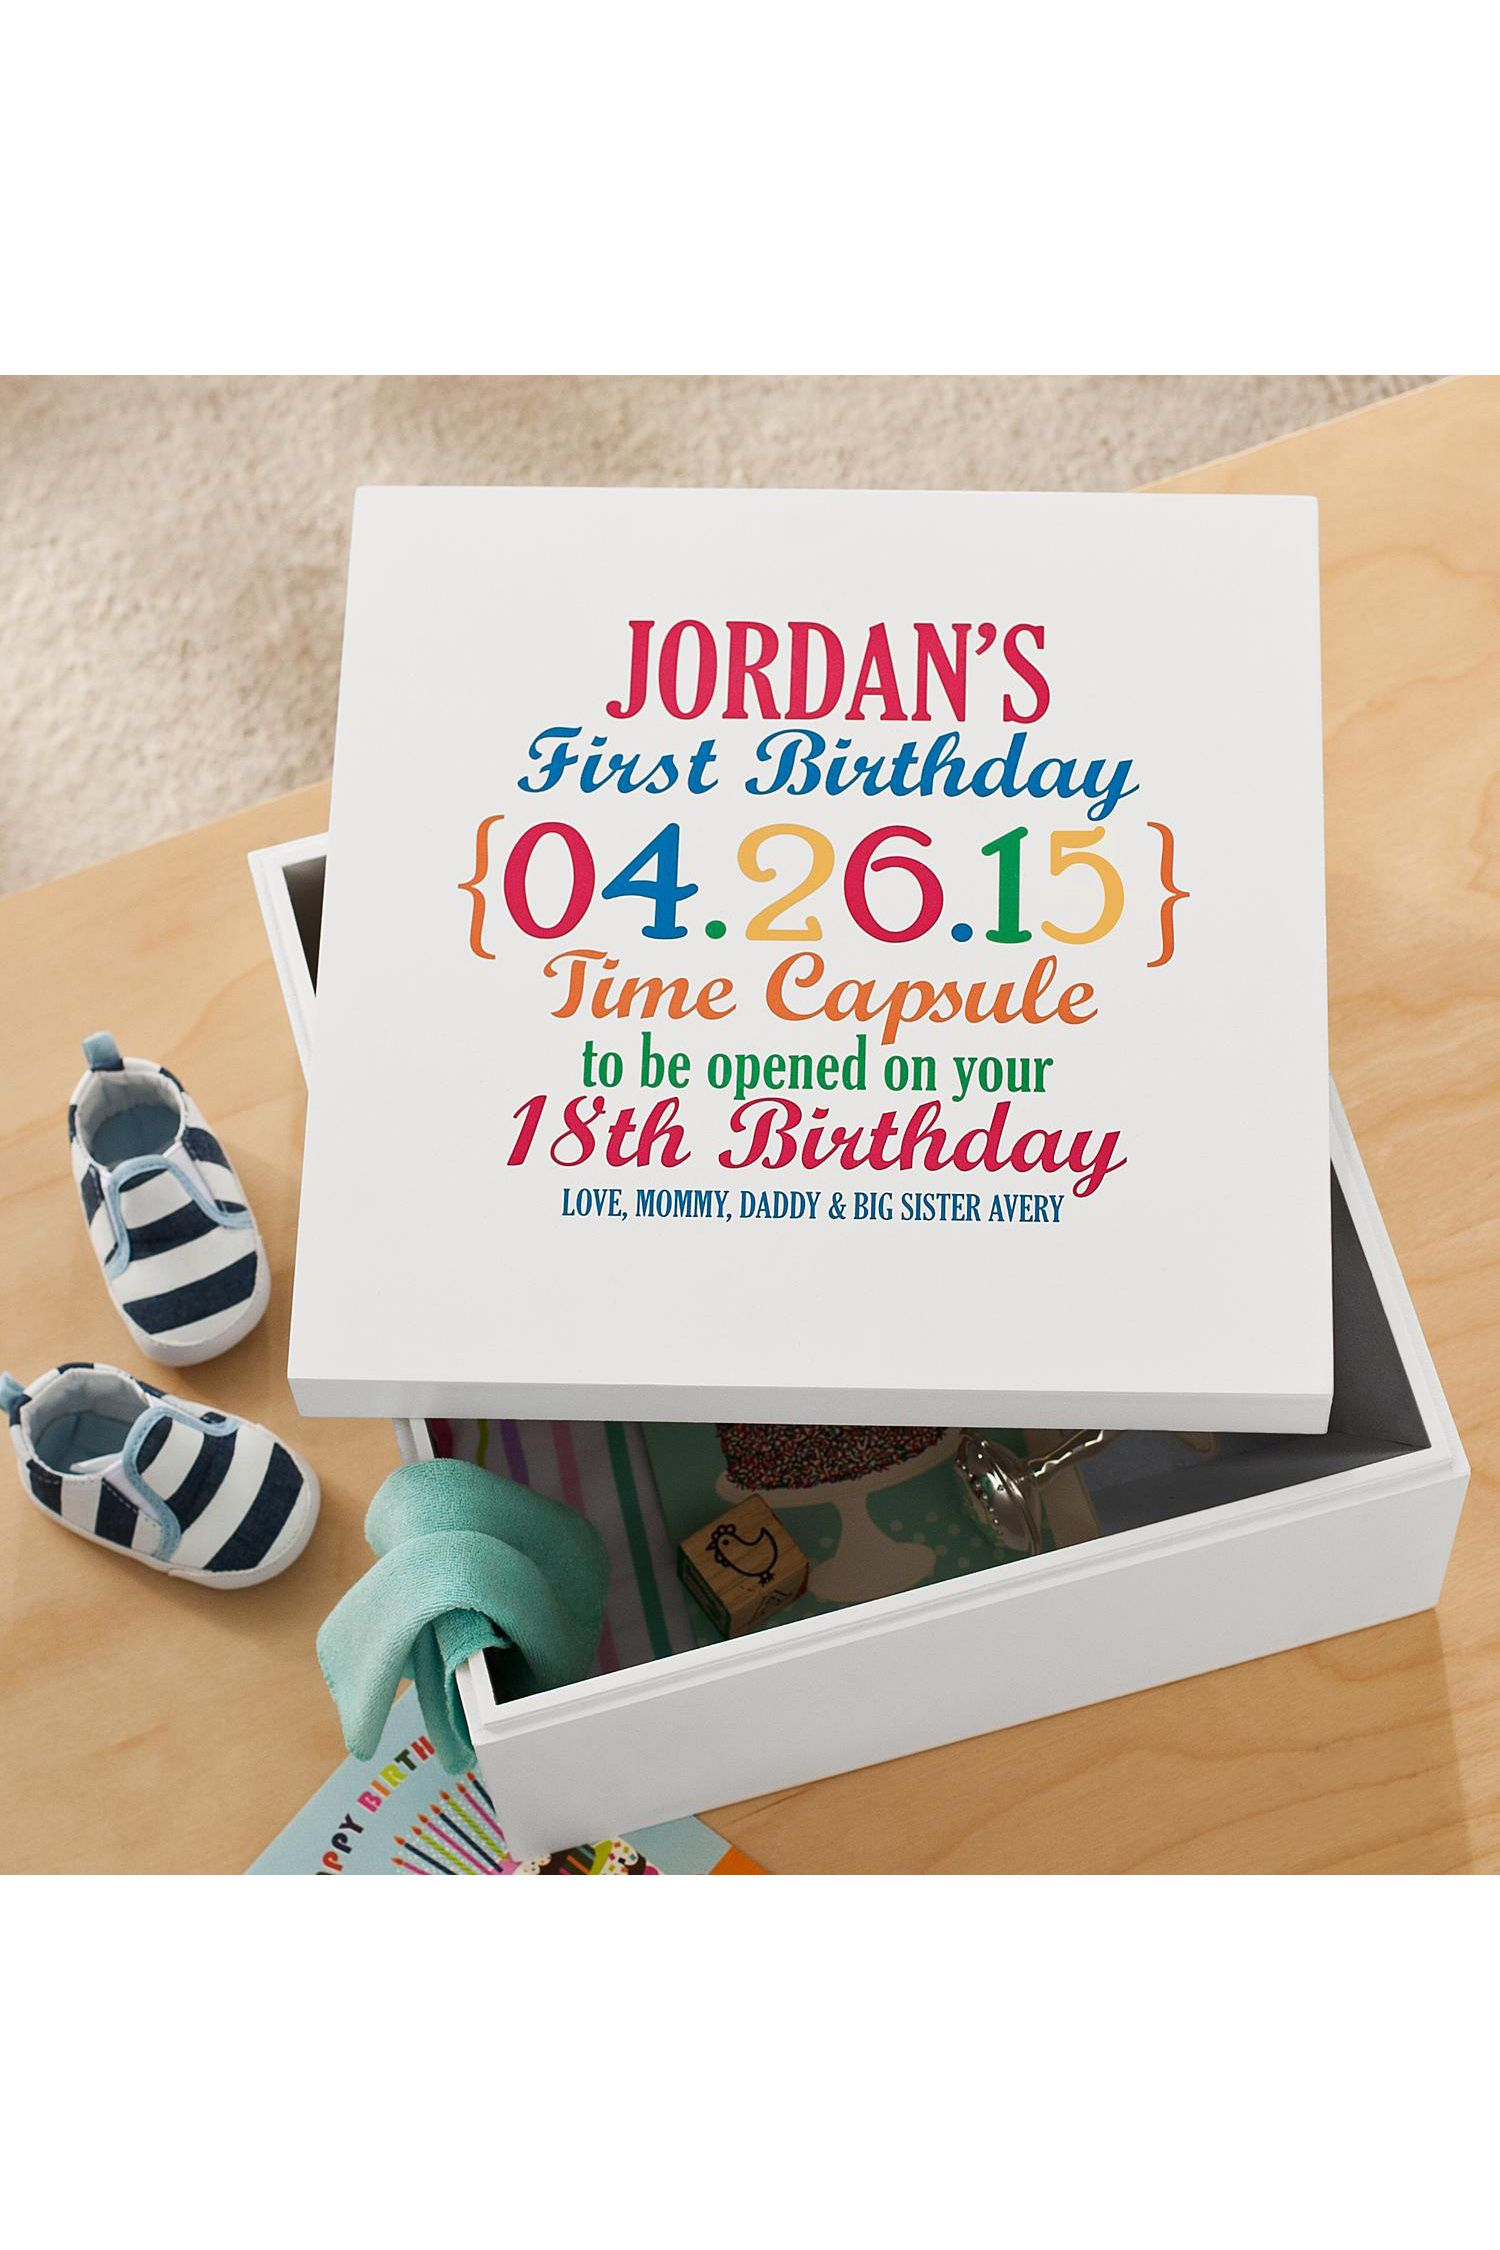 15 Best First Birthday Gifts 2018   Baby's First Birthday Gift Ideas